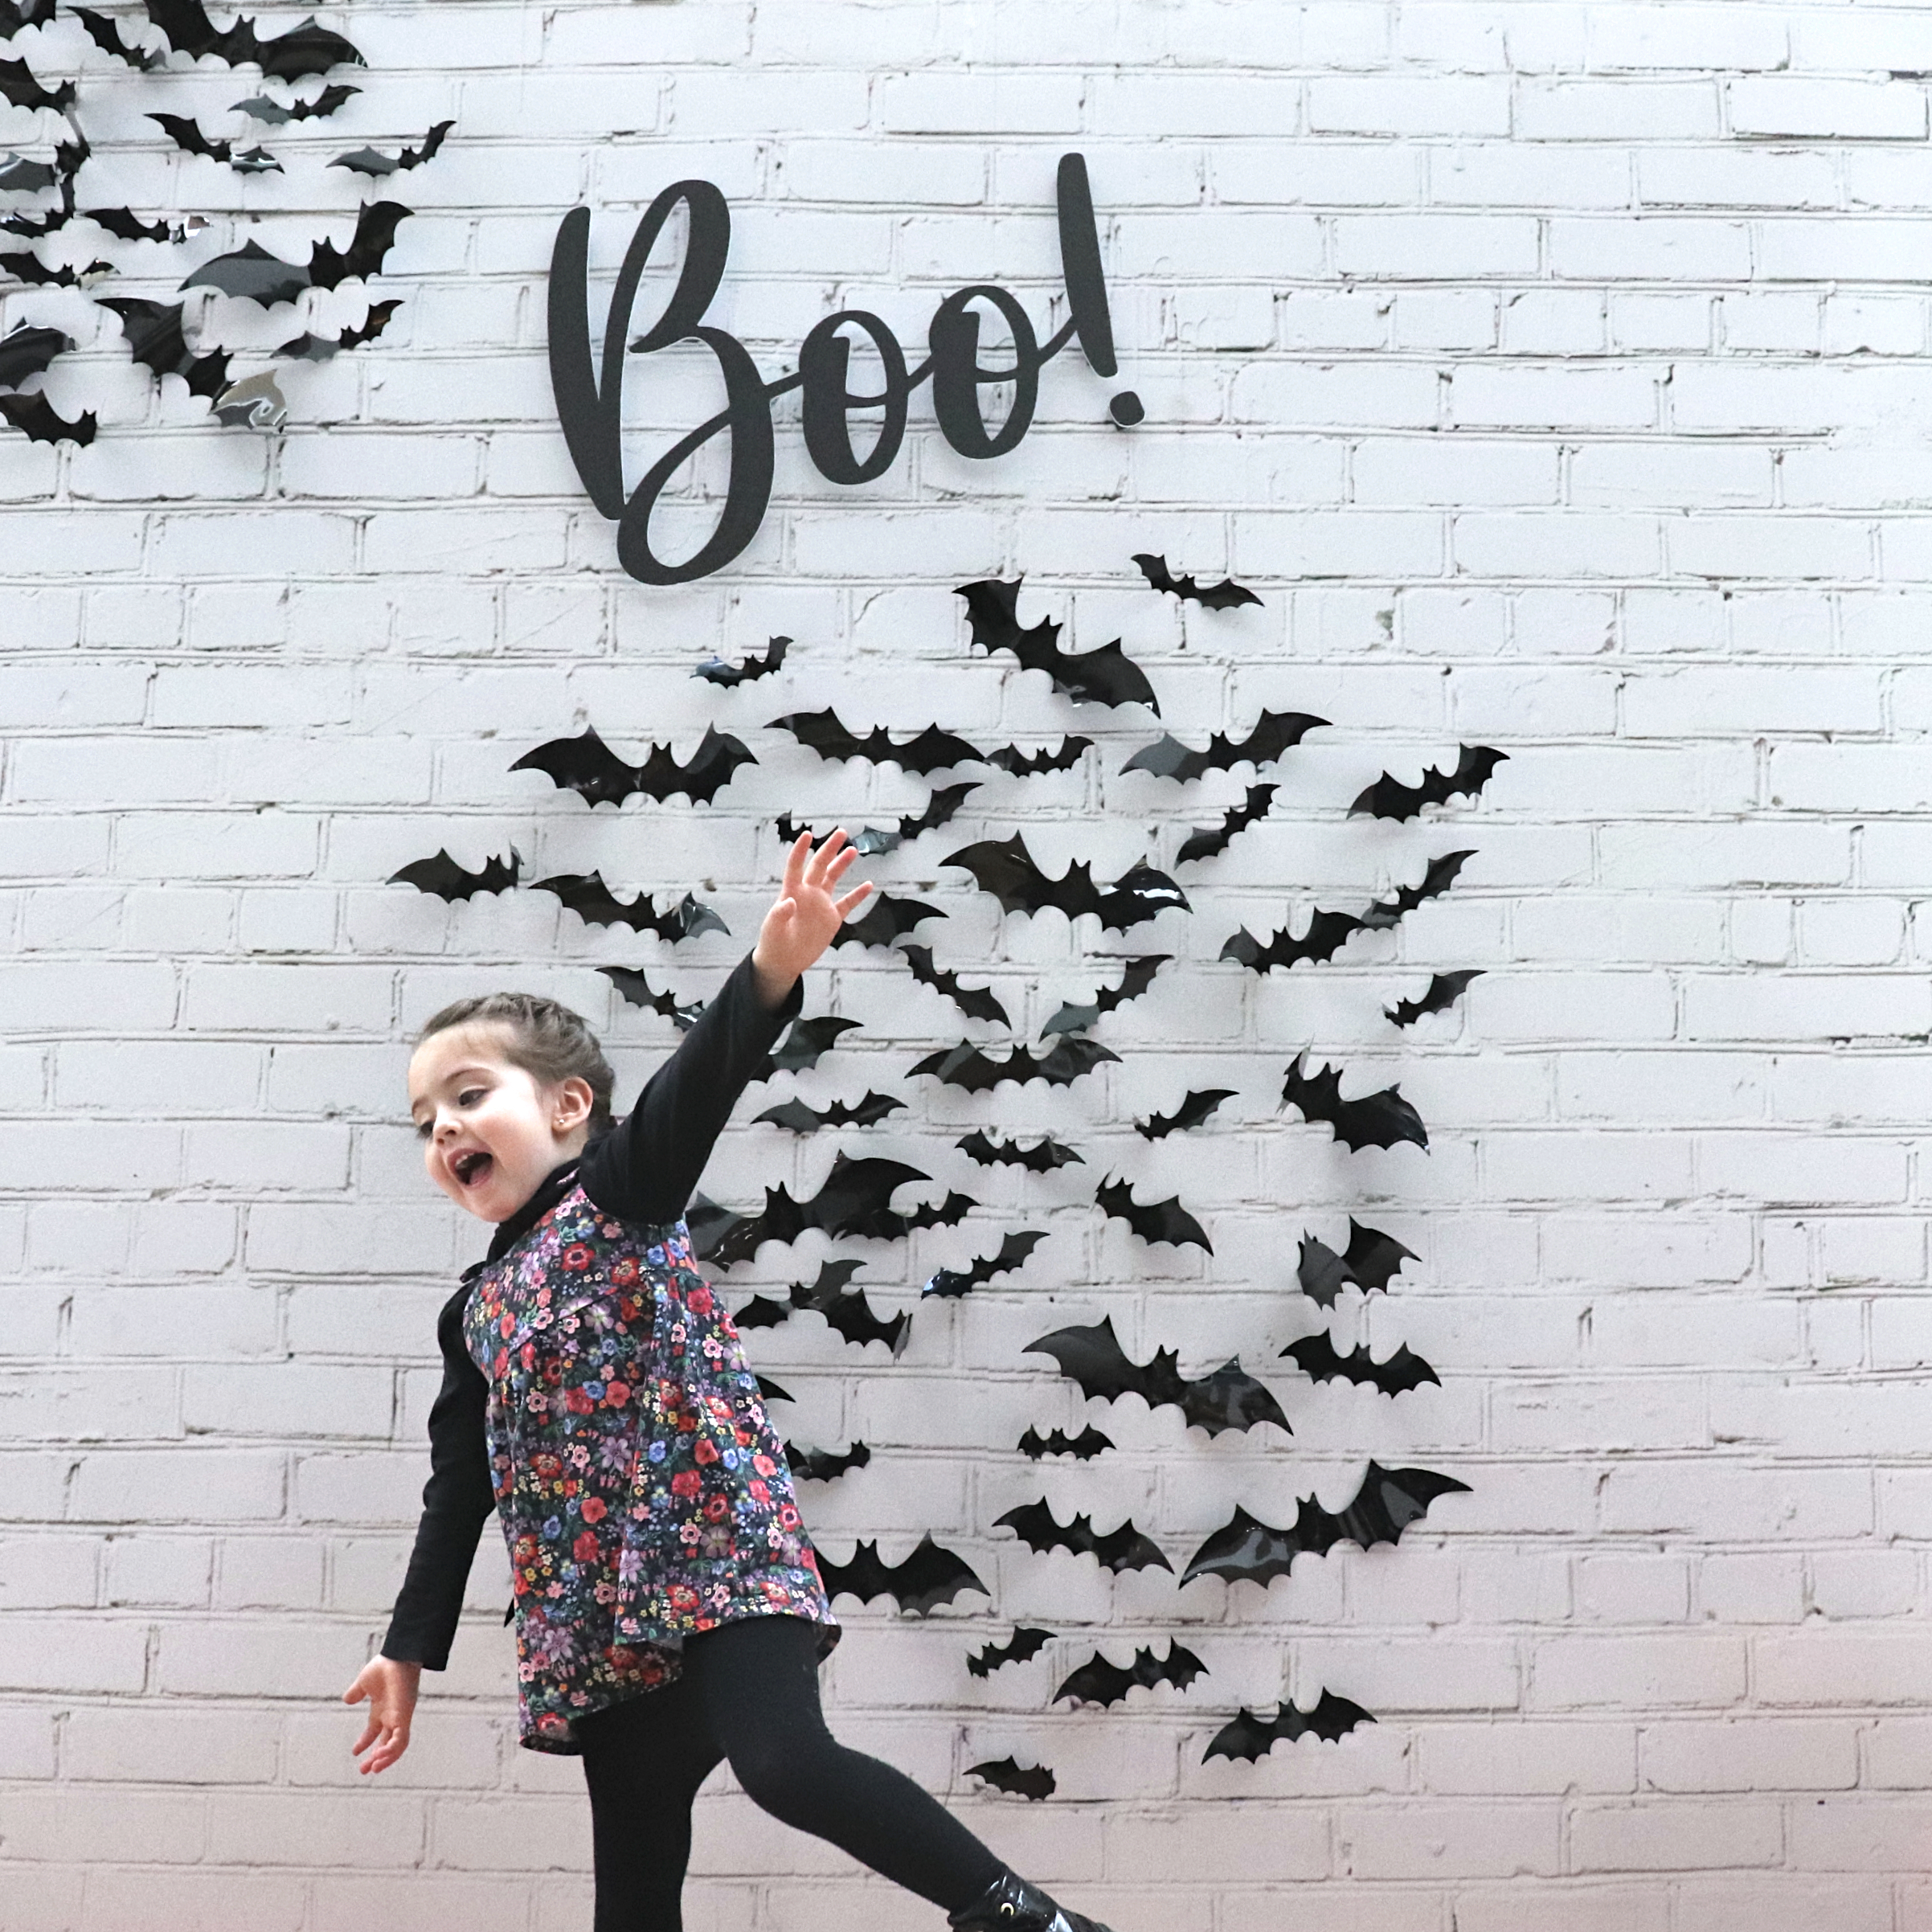 Girl in front of a Halloween display